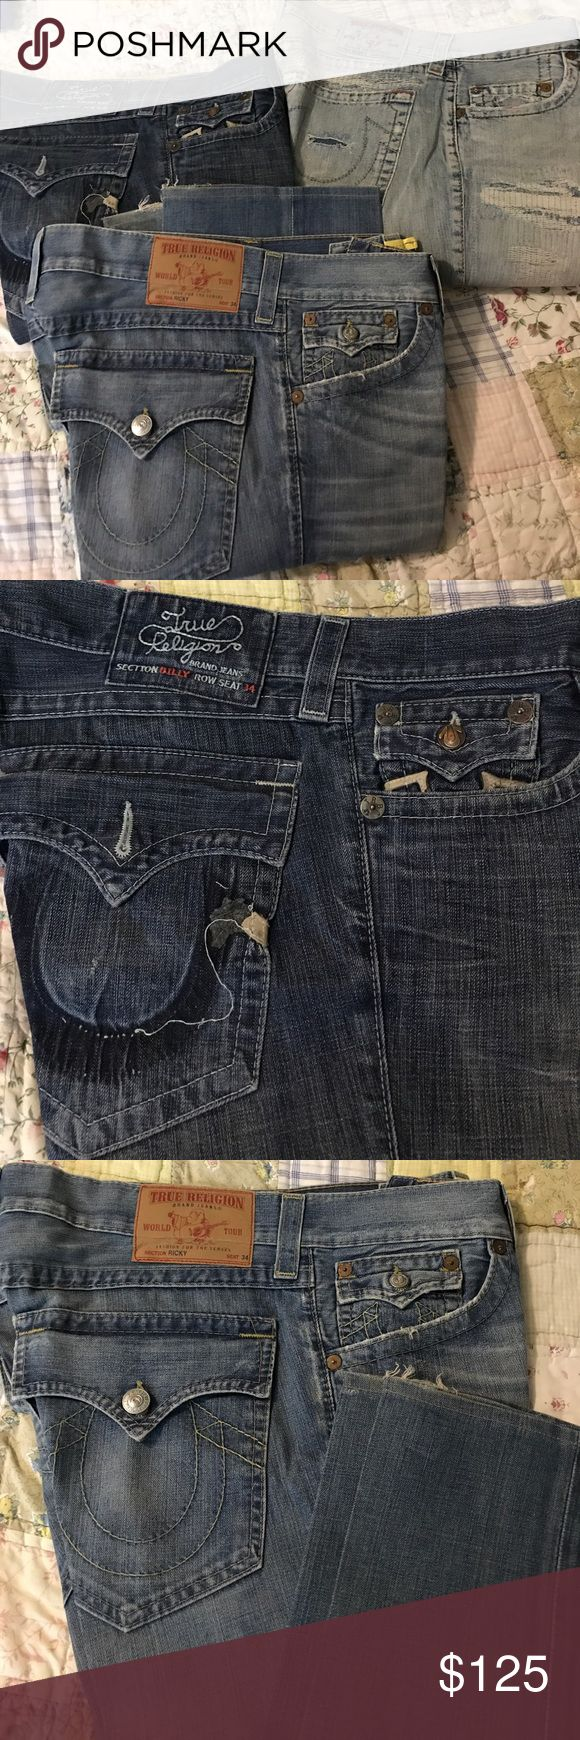 True Religion Men's Jeans I am selling these 3 all together. They are all True Religion Jeans. All in great shape they have been Dry cleaned and starched. They do have rips and tears from the factory. They have been worn a few times. The sizes on all 3 pair are 34X 32. True Religion Jeans Bootcut